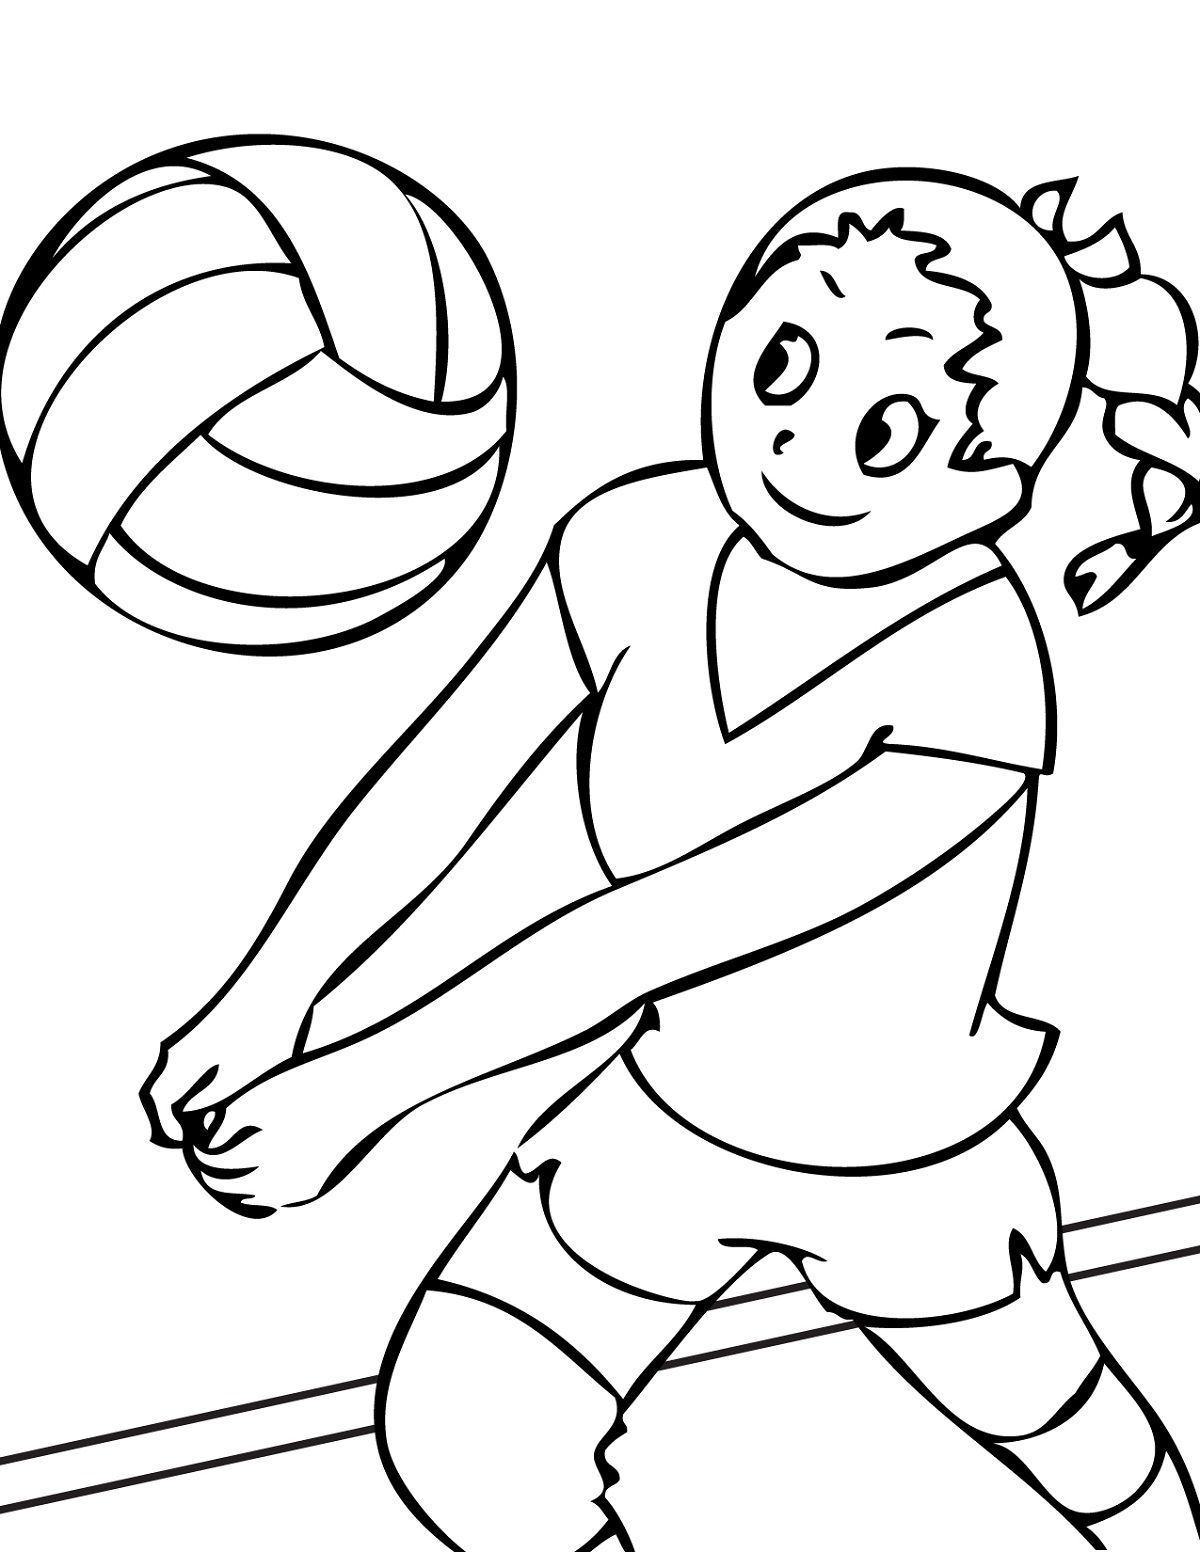 Sports Worksheets For Kids Coloring For The Kids Who